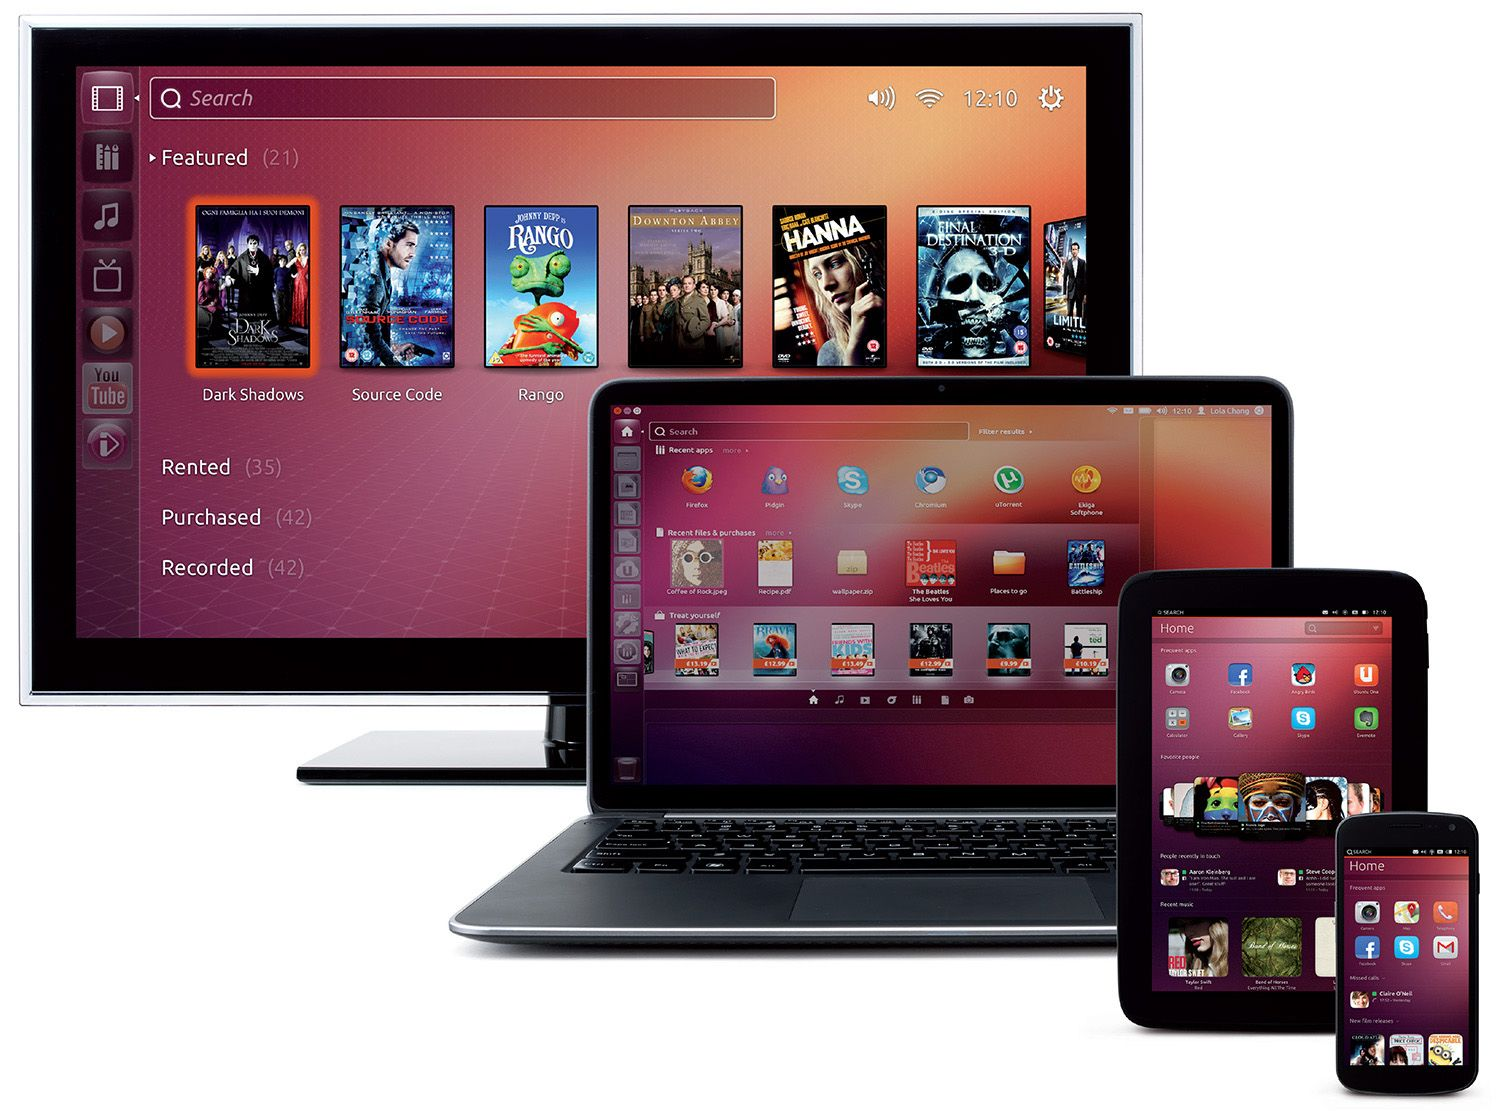 Ubuntu-13-10-saucy-salamander-devices